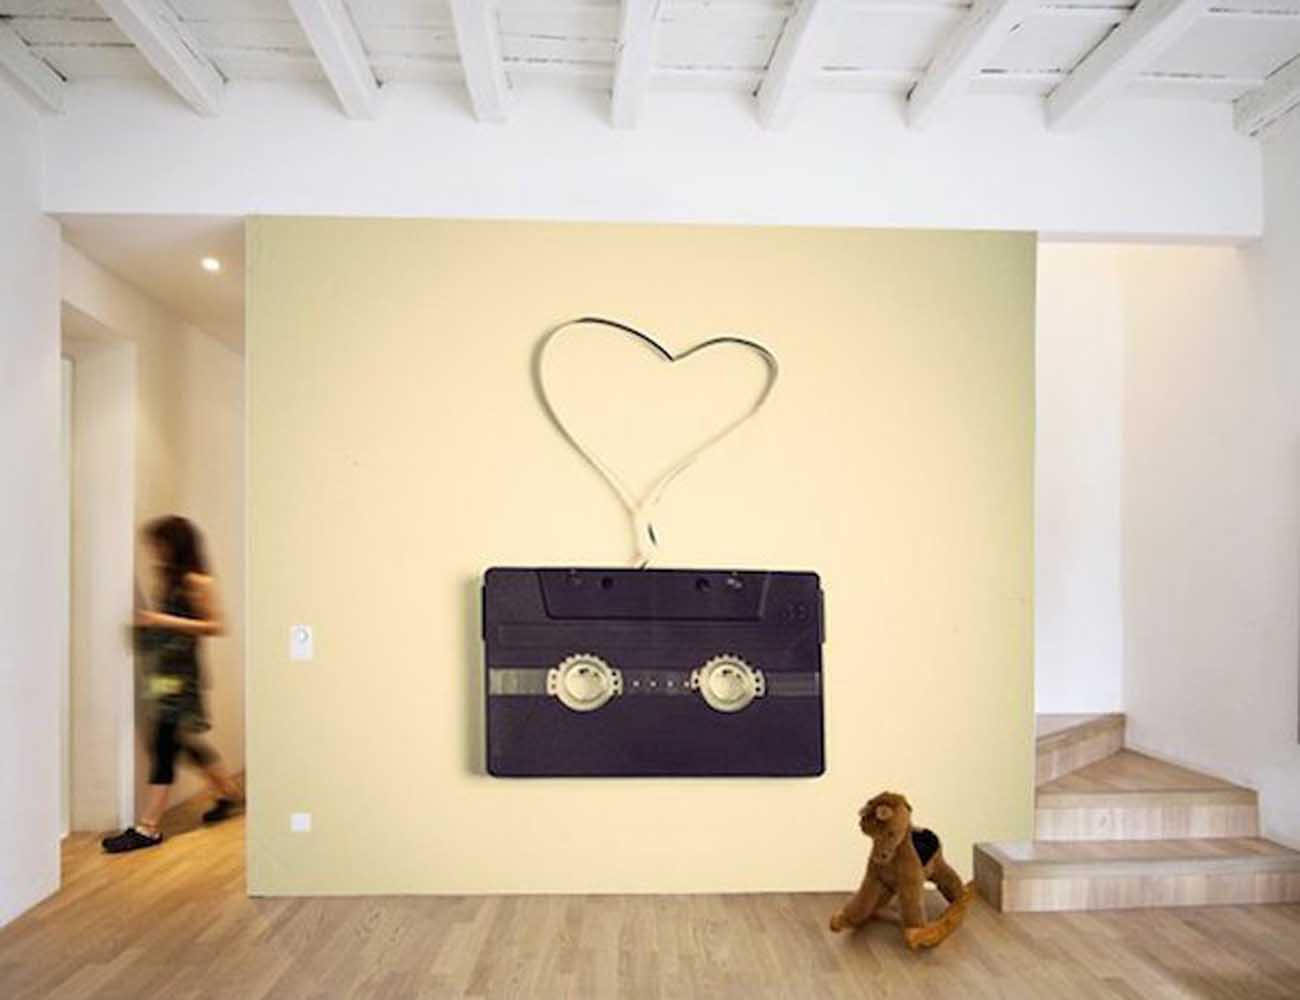 Retro Heart-Shaped Tape Wall Mural